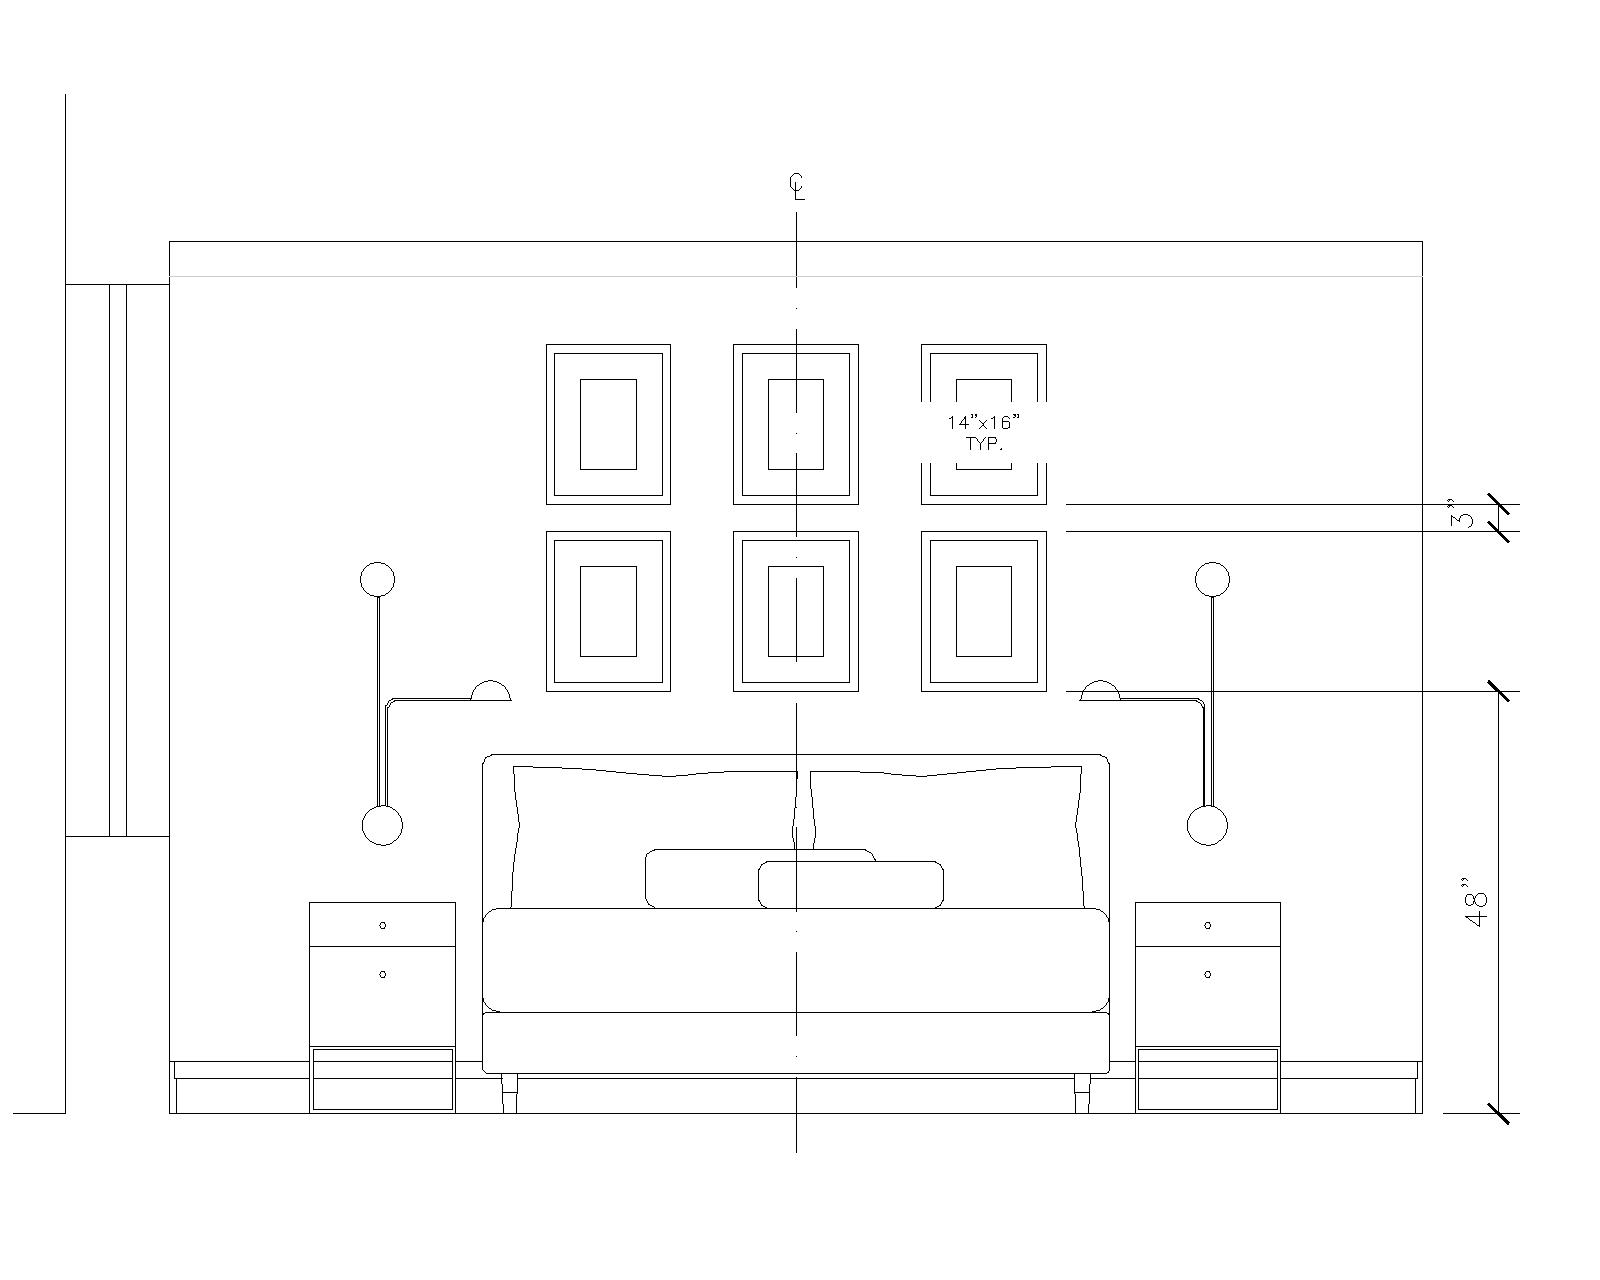 Elevation of bed wall with dimensions for mounting